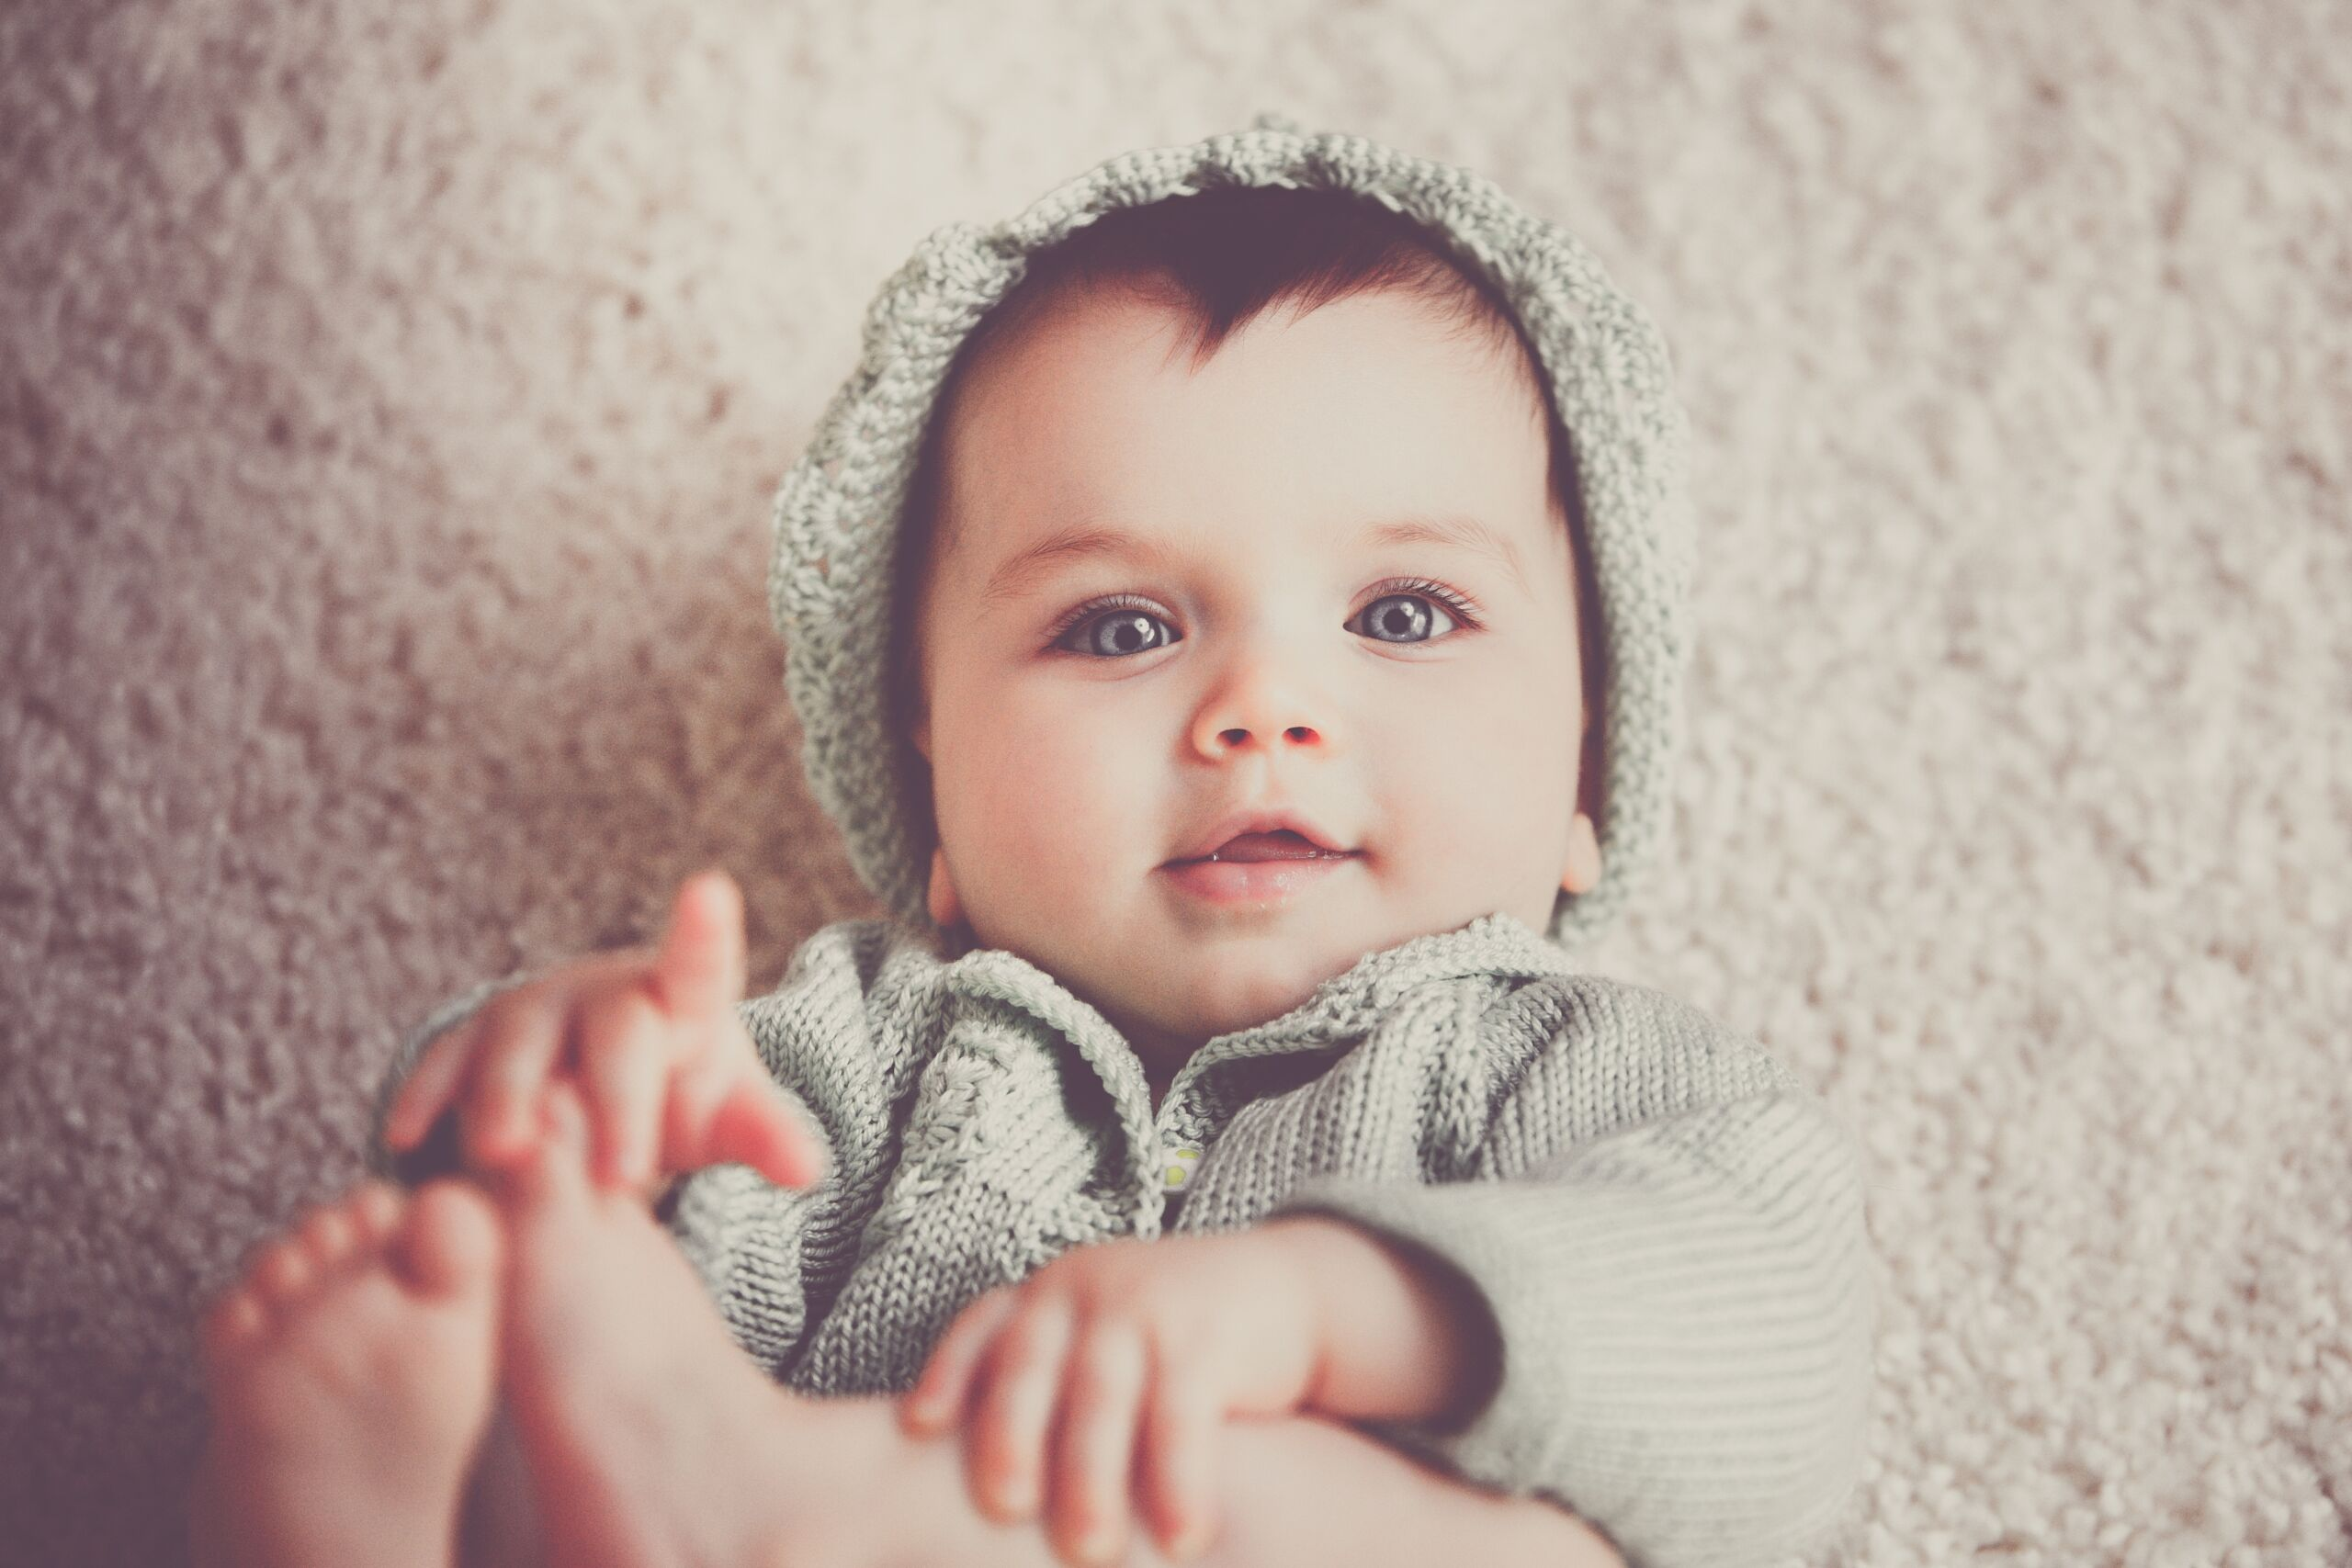 adorable-baby-beautiful-child-266004